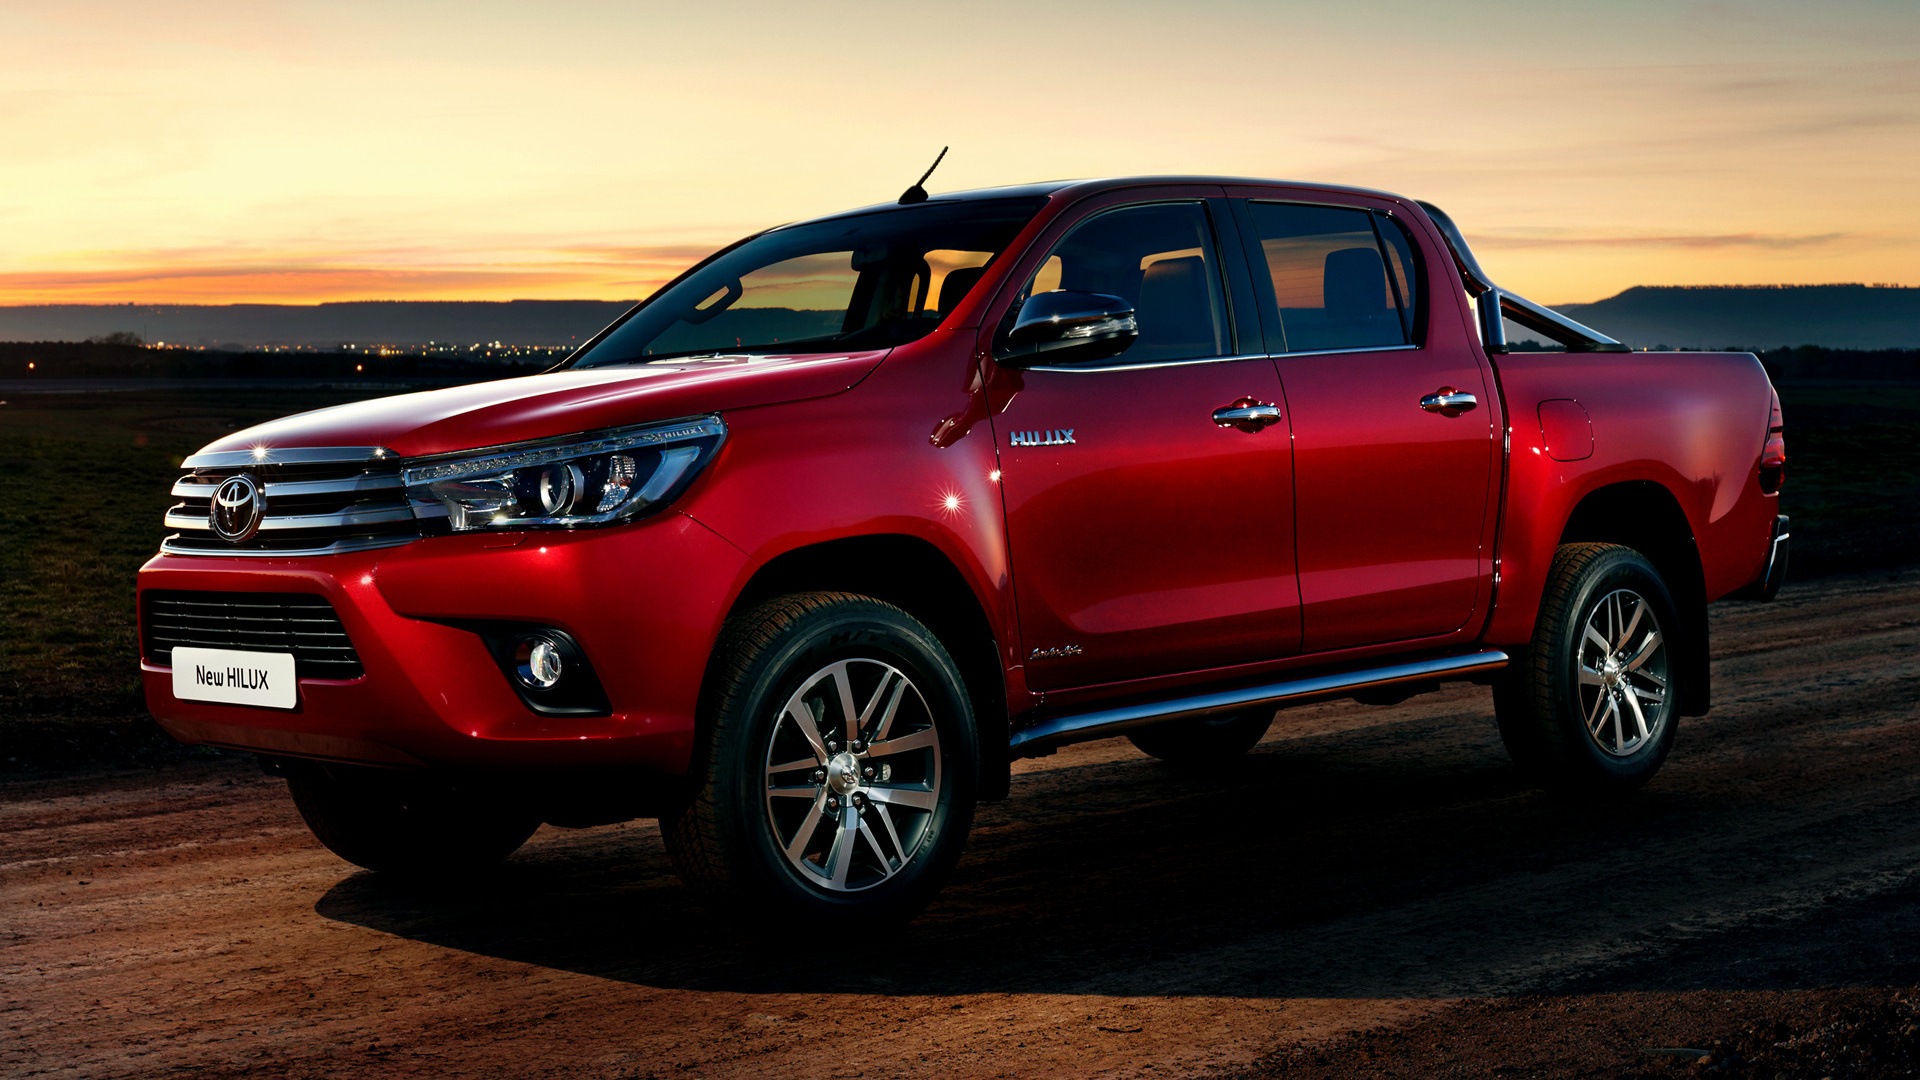 toyota hilux invincible double cab 2015 wallpapers and hd images car pixel. Black Bedroom Furniture Sets. Home Design Ideas